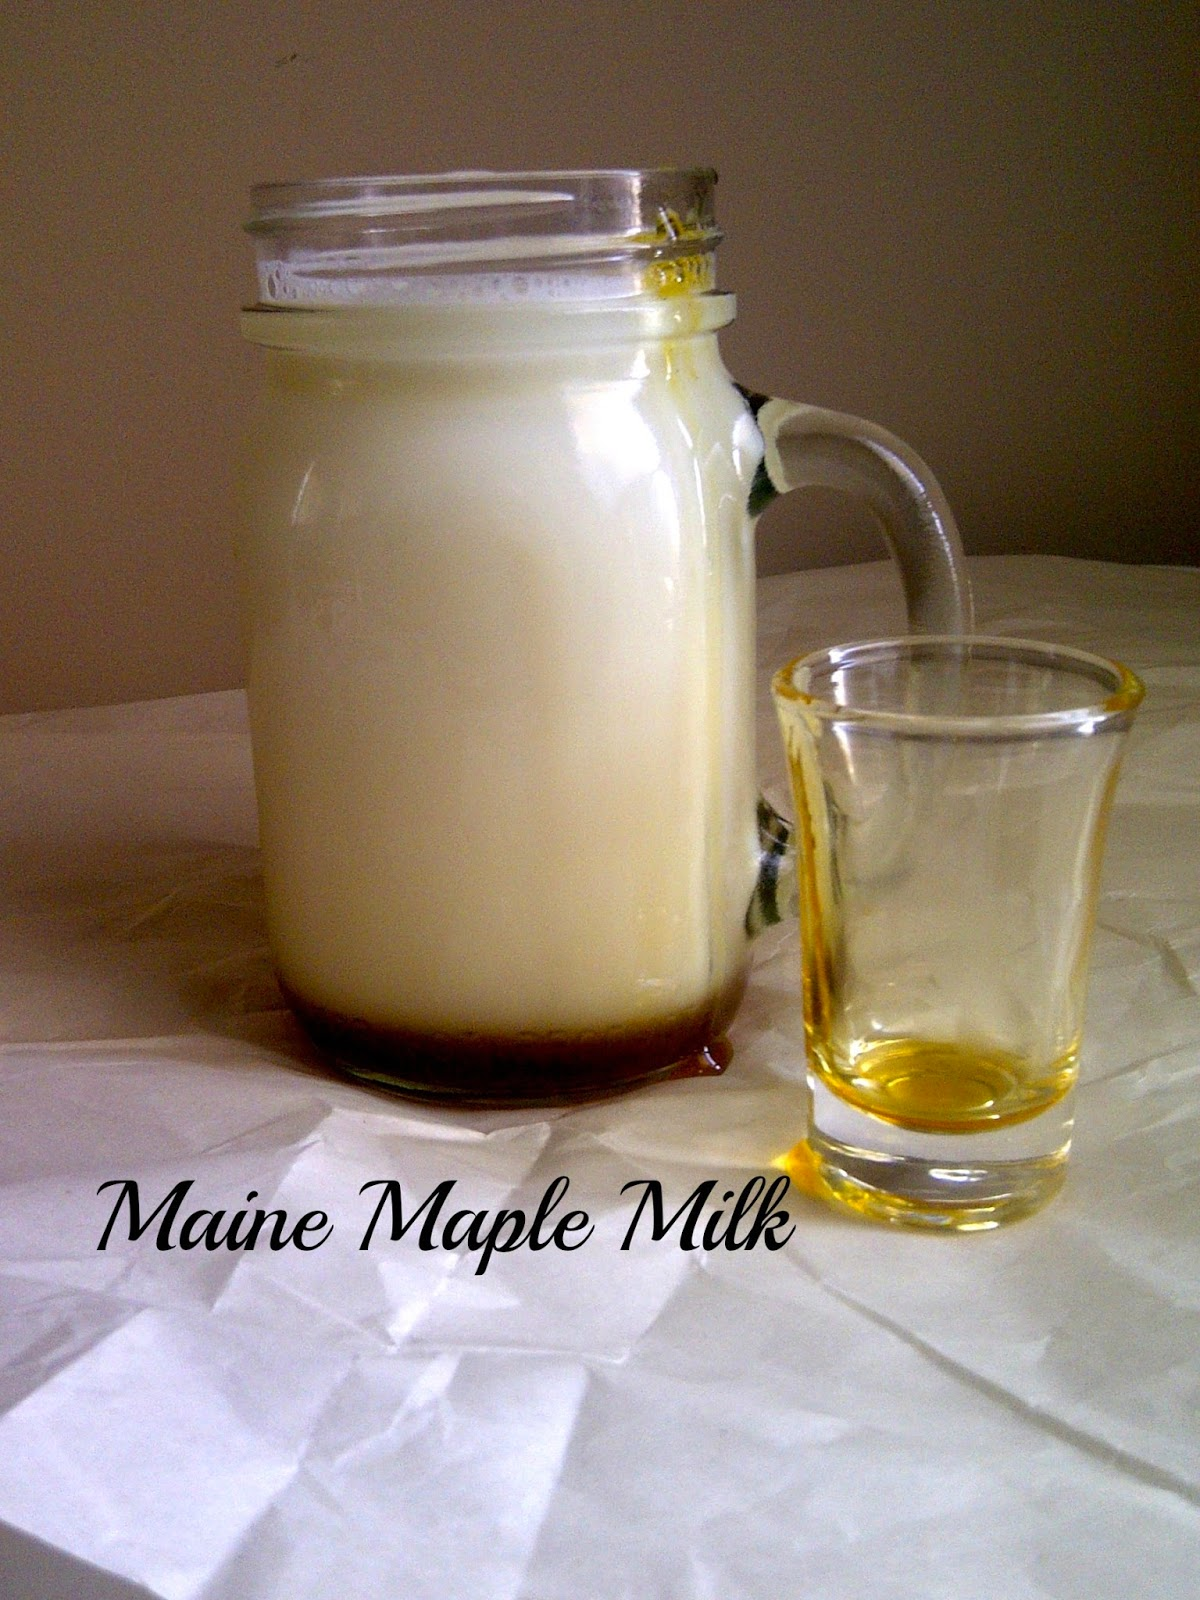 Skip the processed powders, try 100% natural Maine Maple Milk!